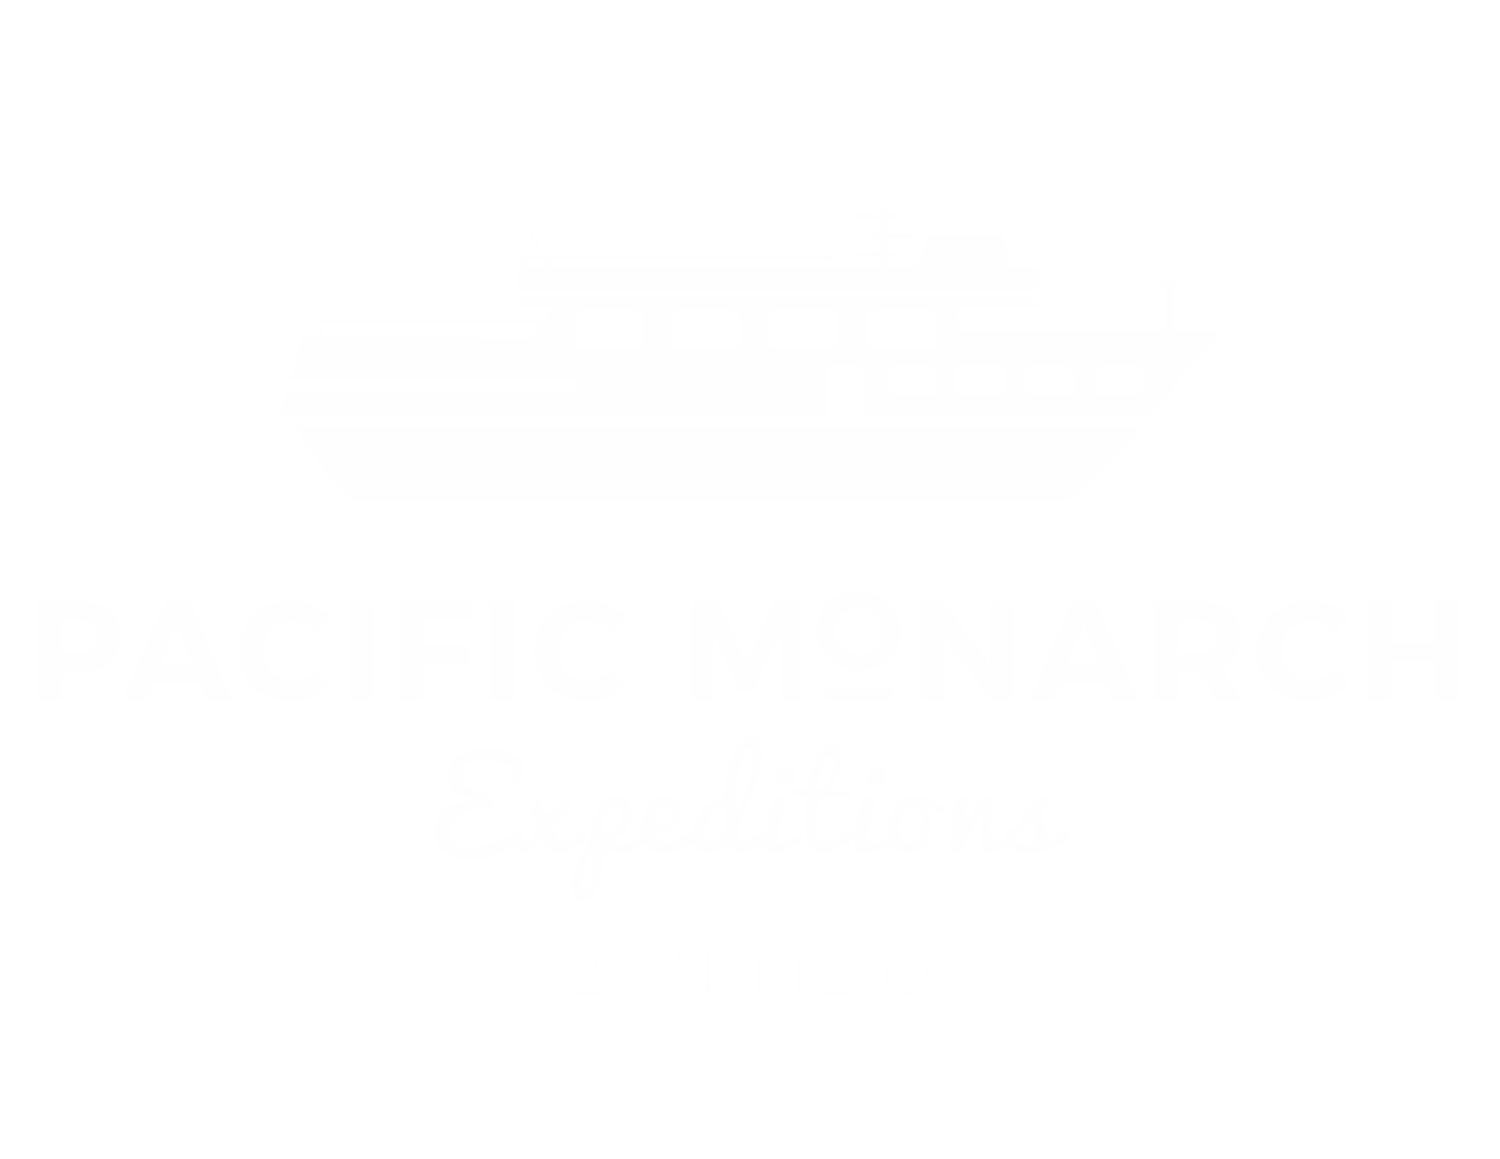 Pacific Monarch Expeditions